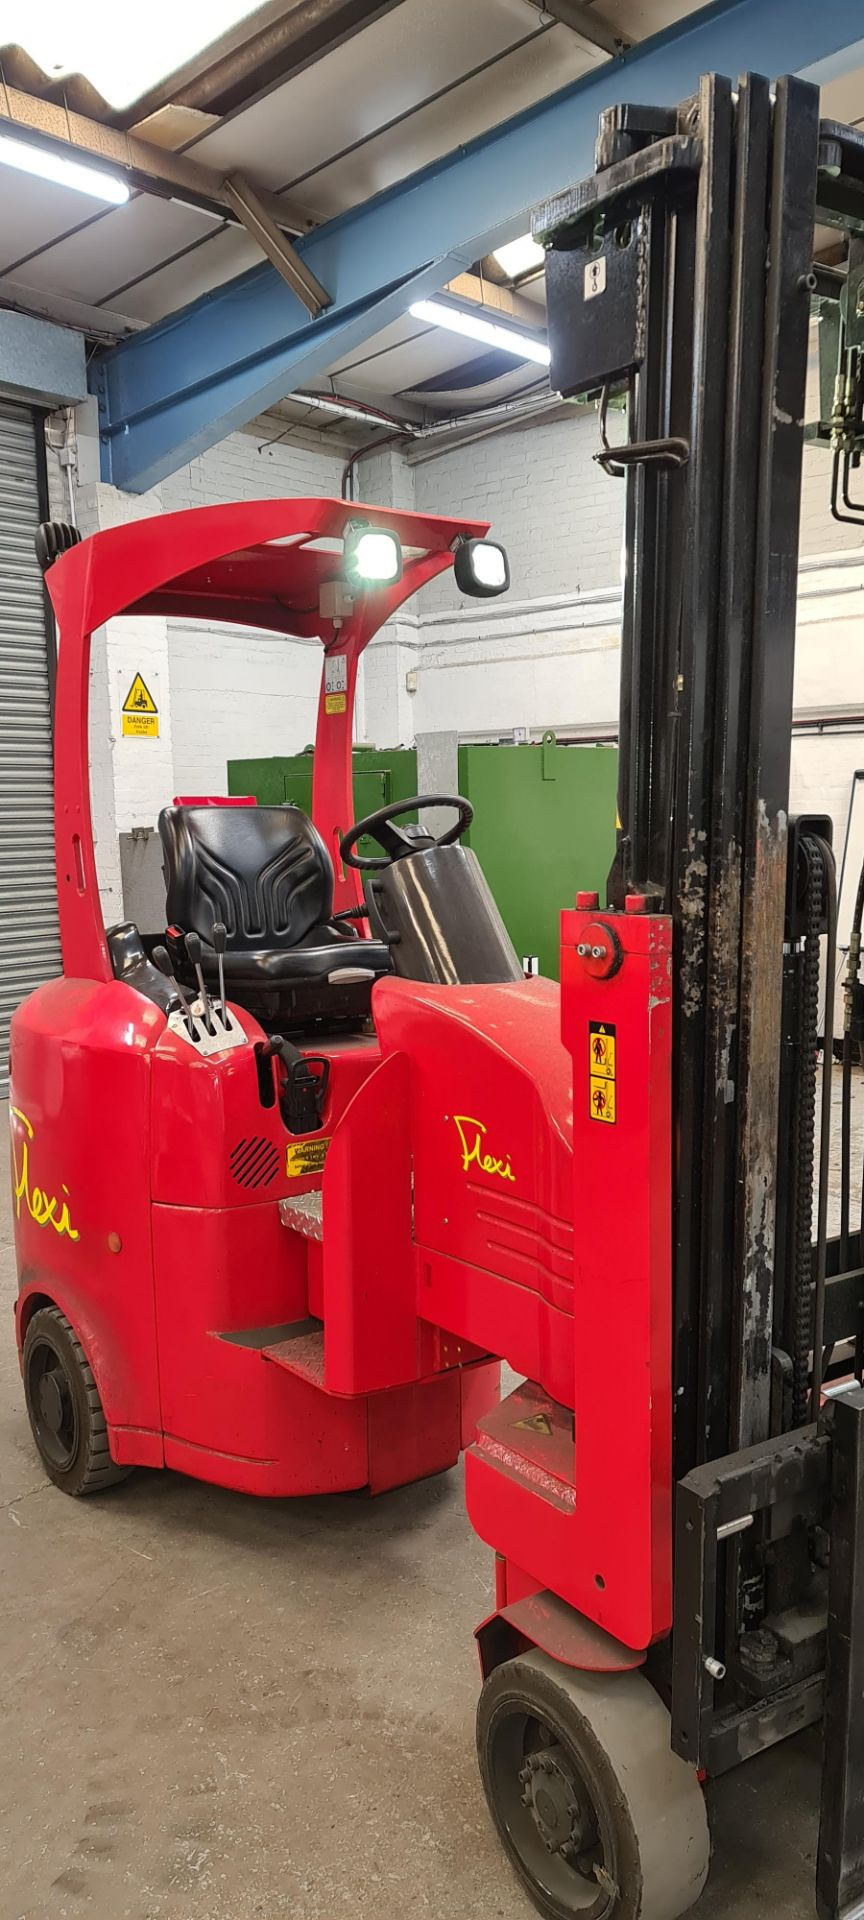 2014 Flexi Euro AC 'bendy' electric Fork Lift Truck - Image 6 of 29